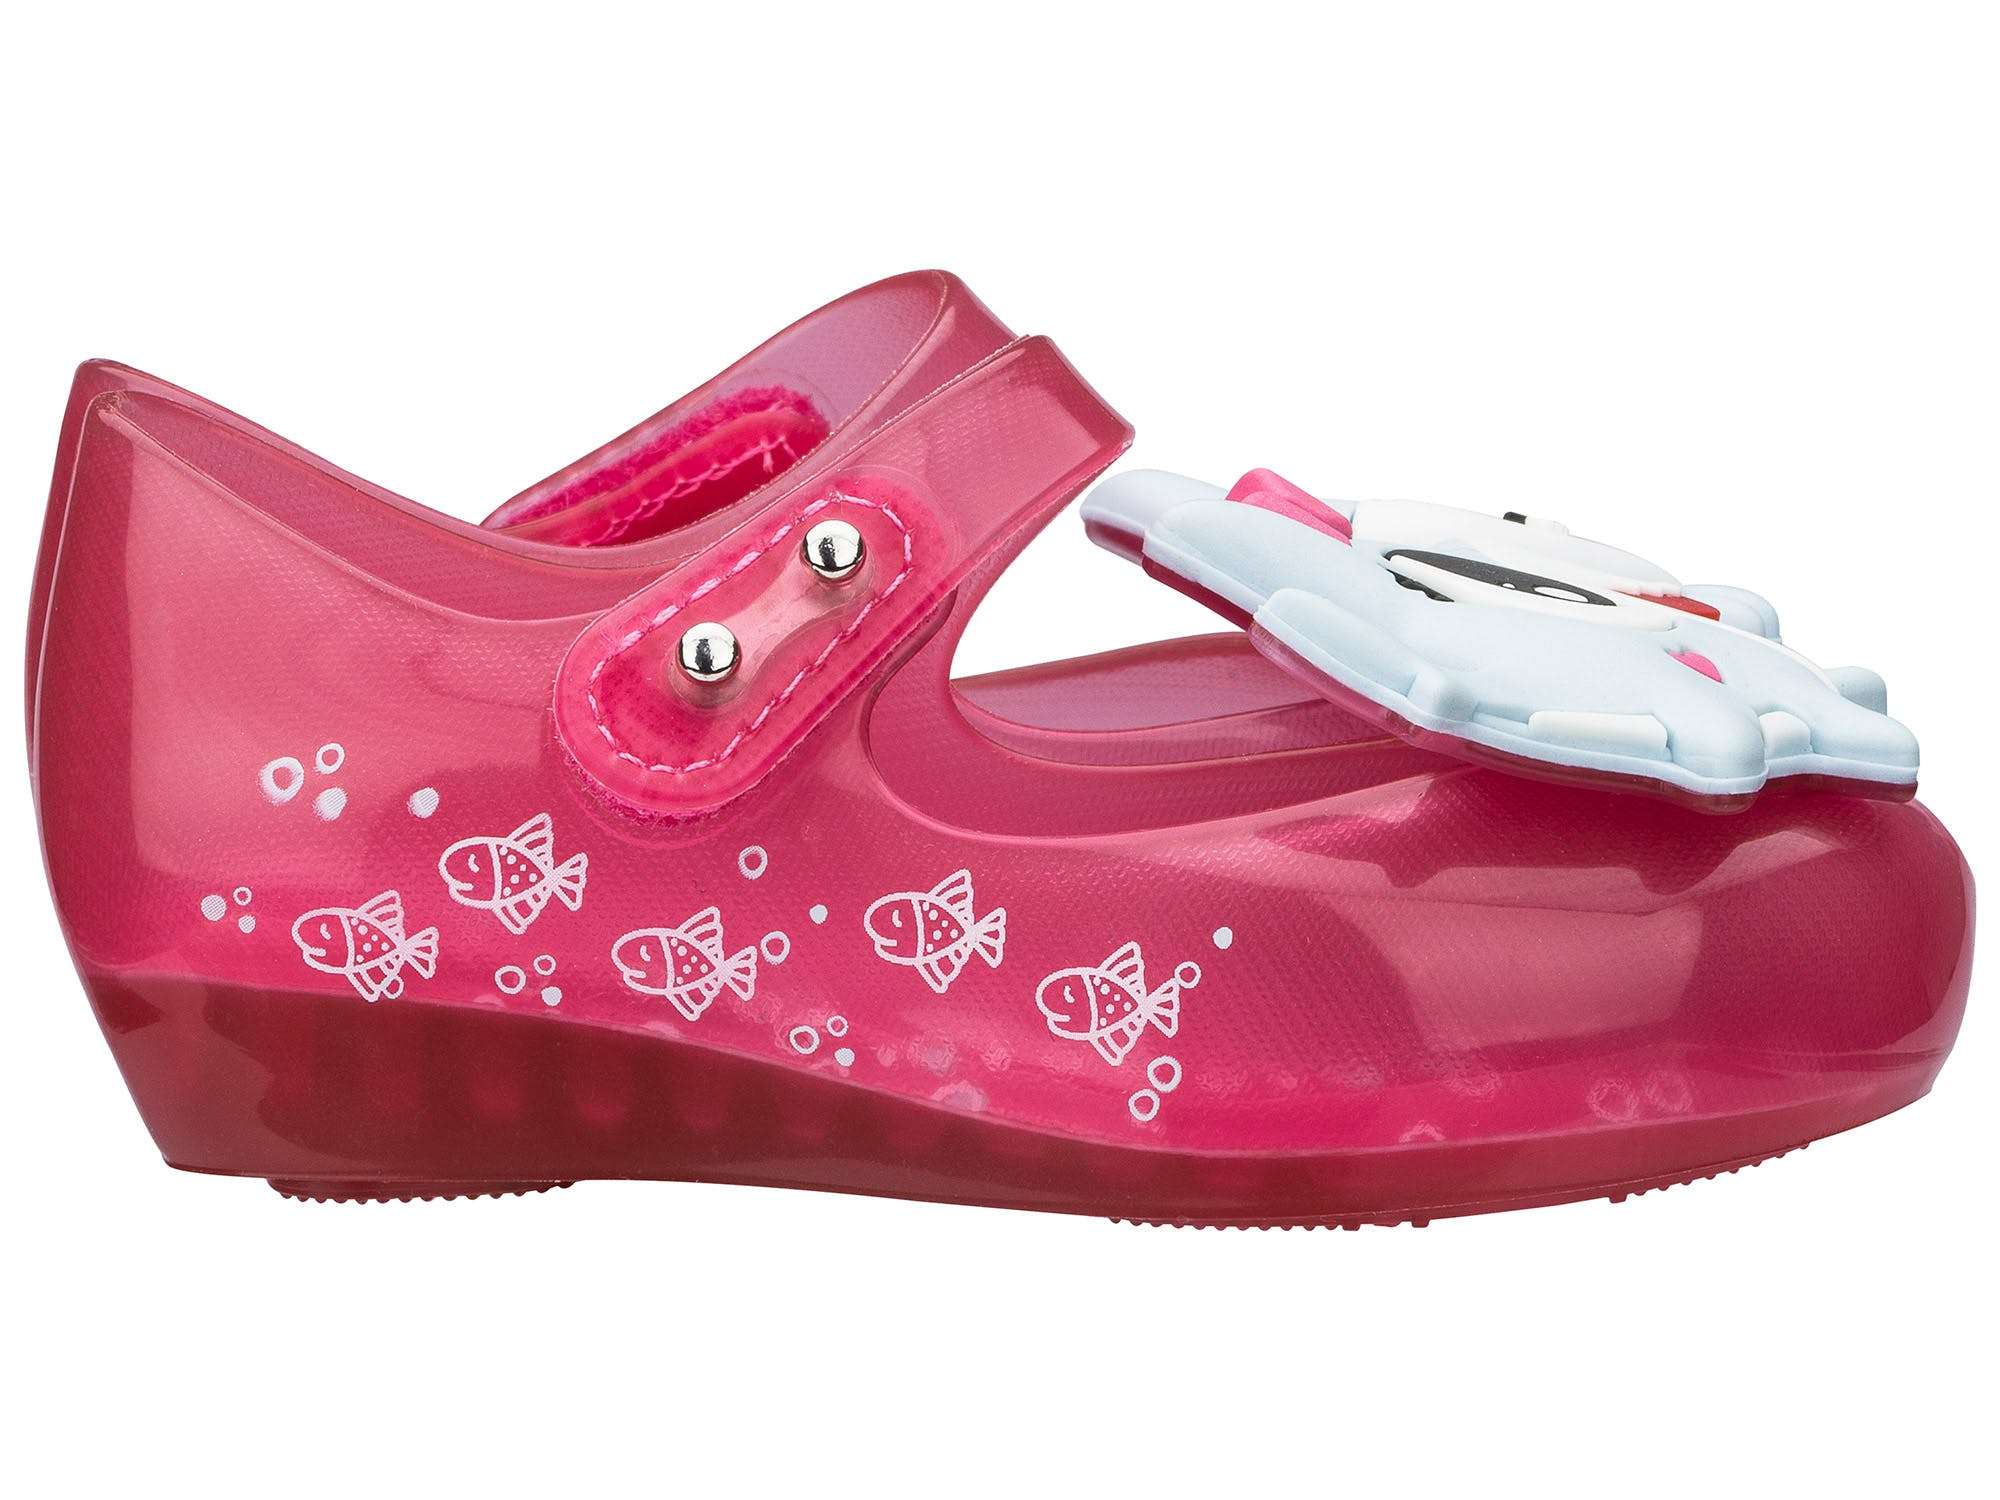 Mini Melissa Ultragirl Shark Rosa Azul